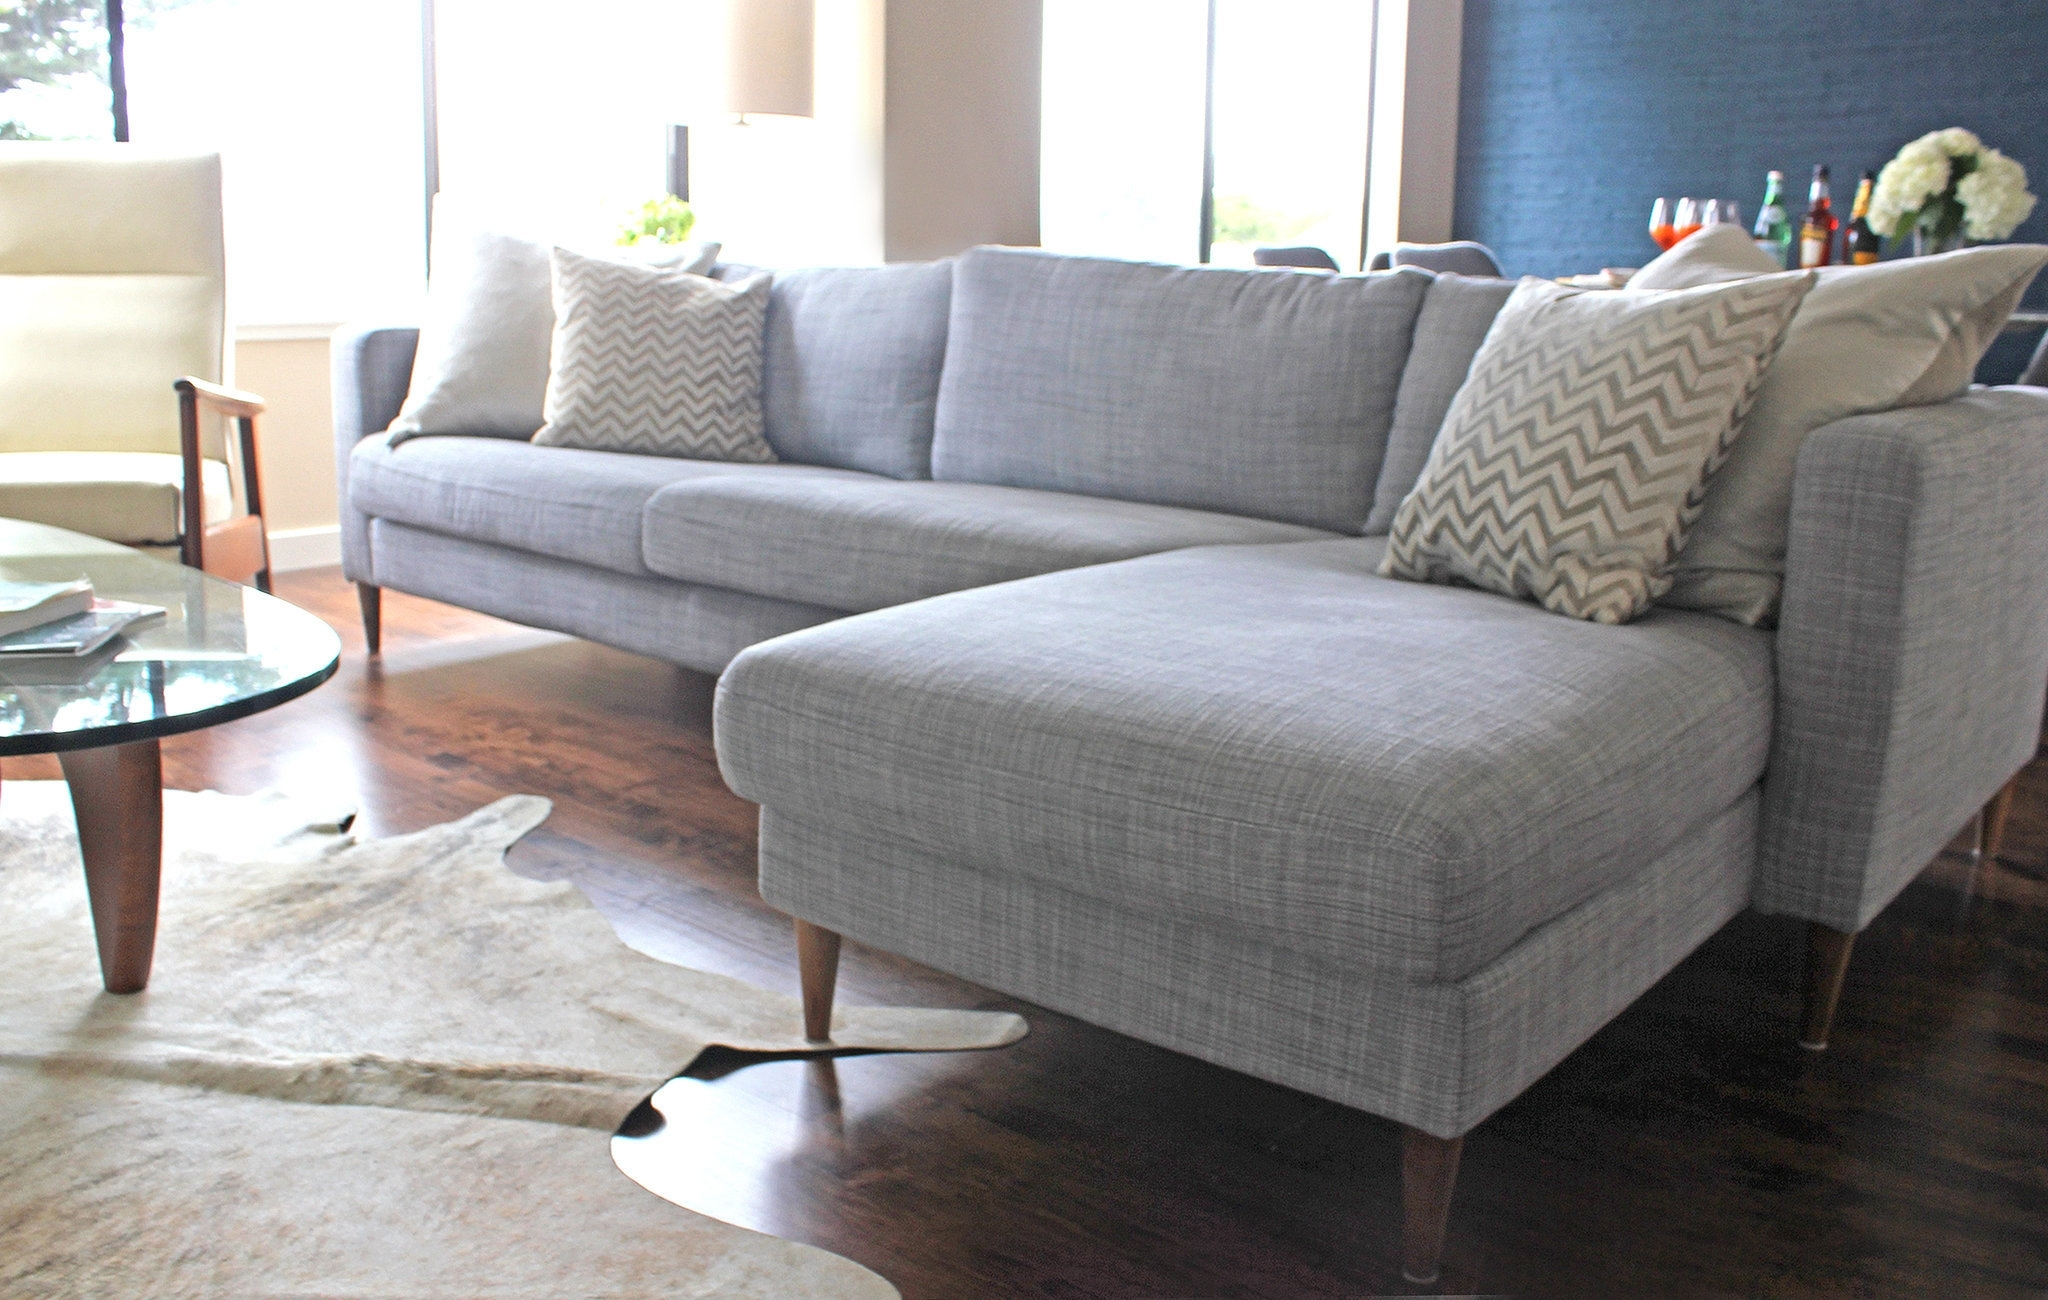 Karlstad Chaises Pertaining To Well Liked Stunning Ikea Karlstad Sofa For Dress Up An Ikea Sofareplacing (View 12 of 15)